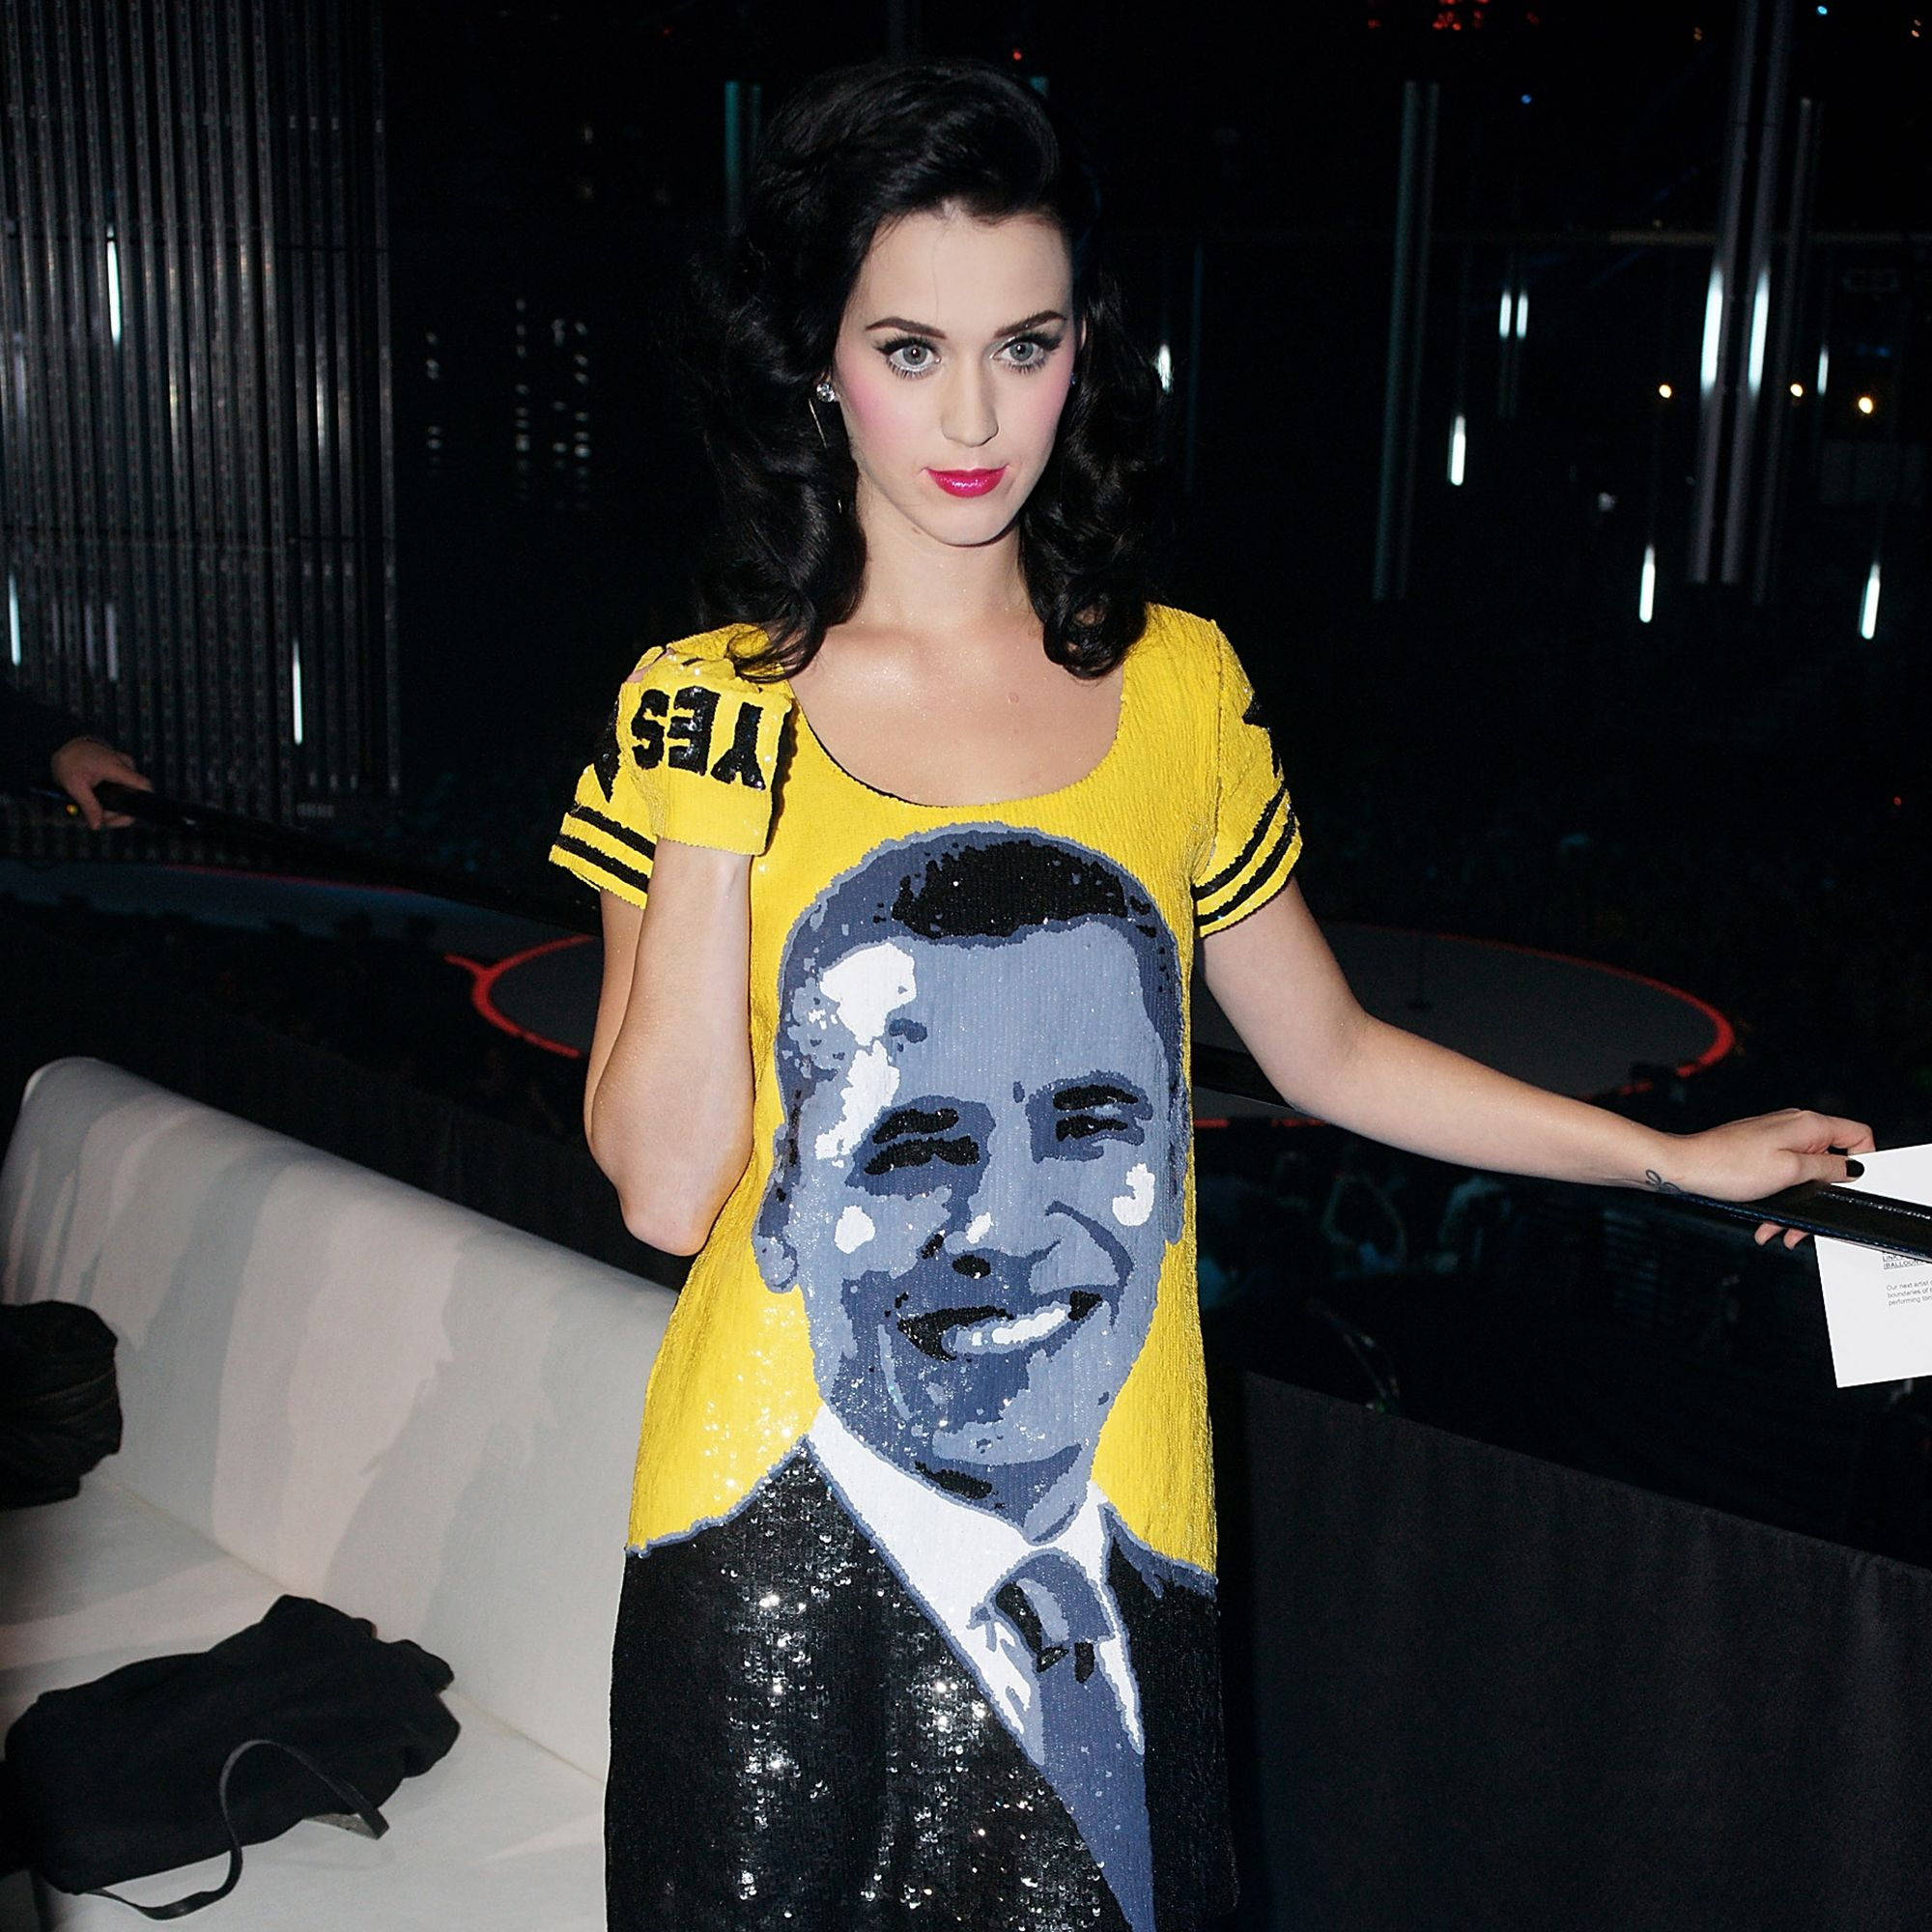 <p>Barack Obama was elected President of the United States just two days before Katy Perry wore this Jean Charles de Castelbajac dress at the 2008 MTV Europe Music Awards. </p>